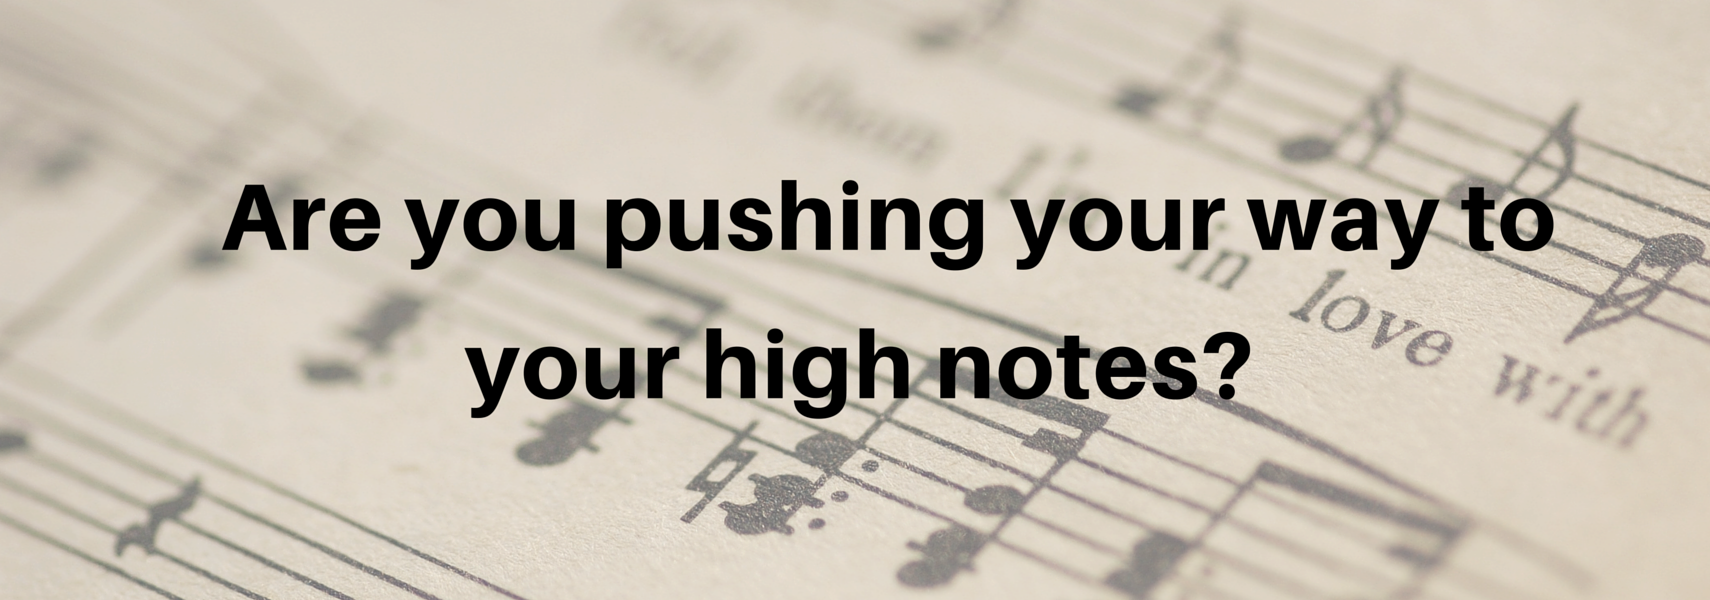 Are you pushing your way to your high notes?